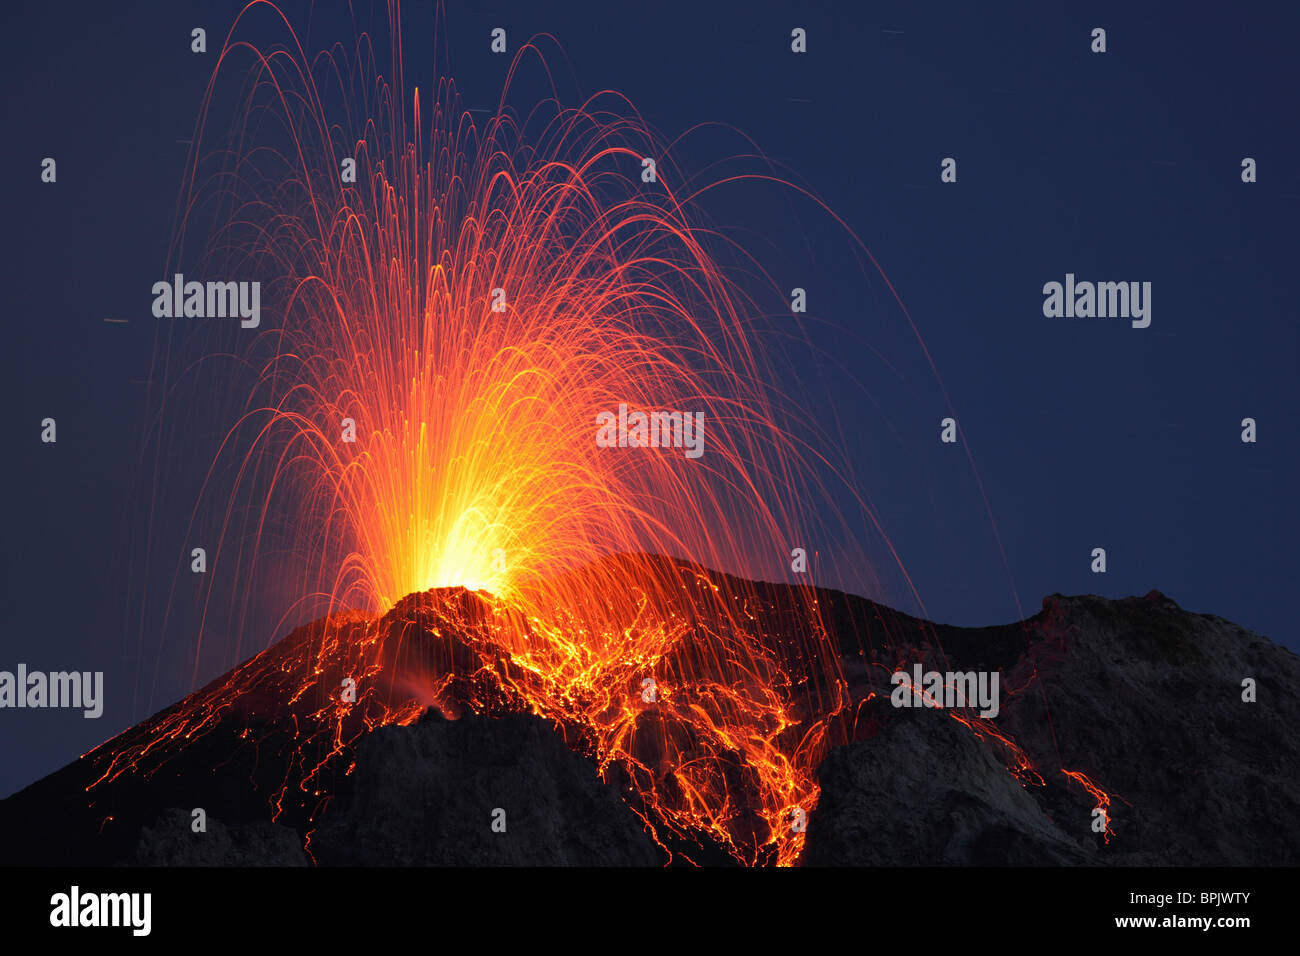 May 8, 2009 - Stromboli eruption, Aeolian Islands, north of Sicily, Italy. - Stock Image